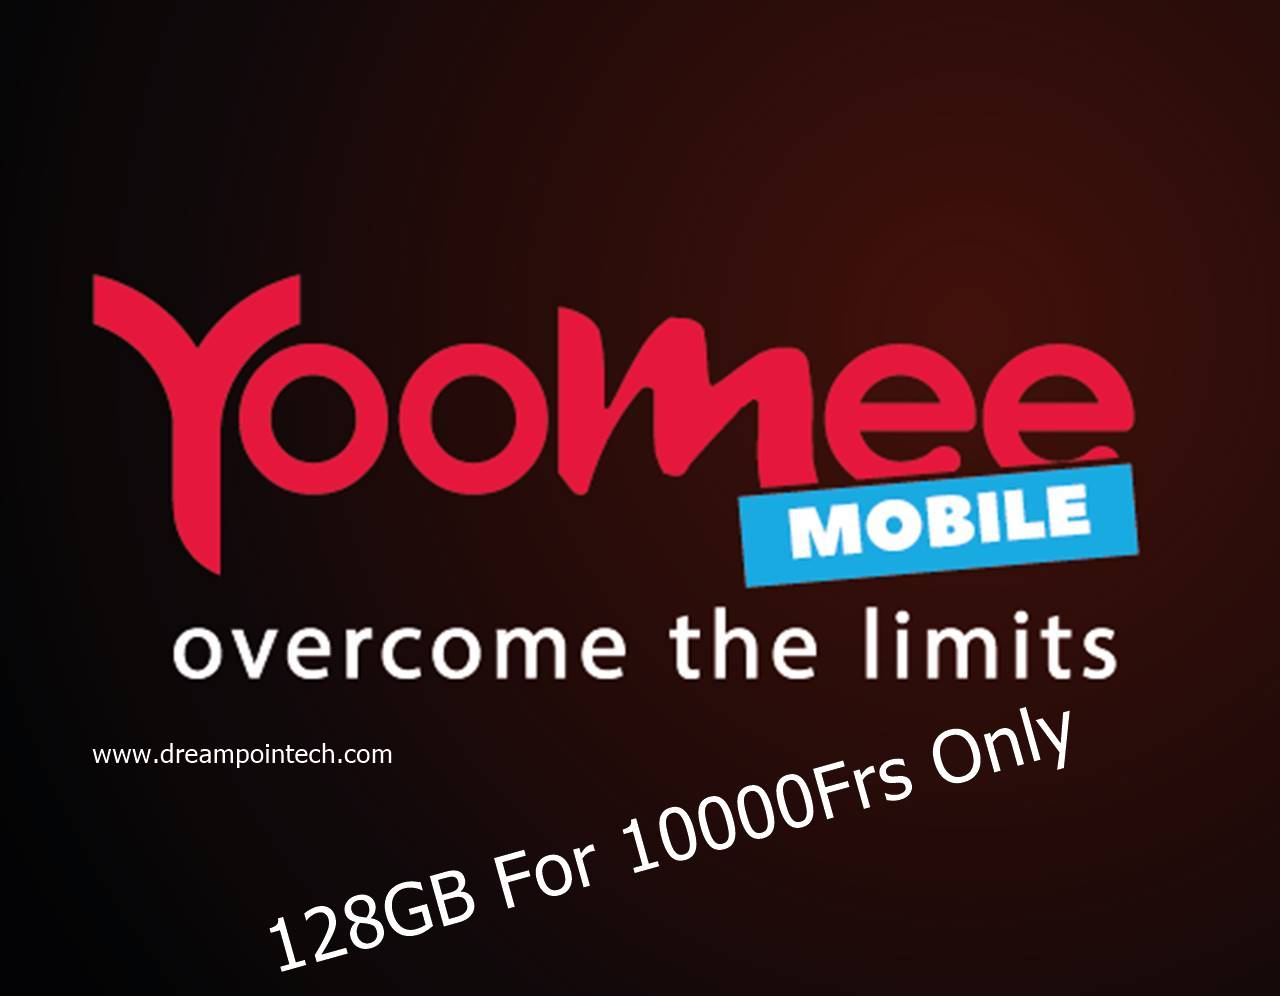 Yoomee Cameroon Crazy Deals: 128GB for 10000Frs Only